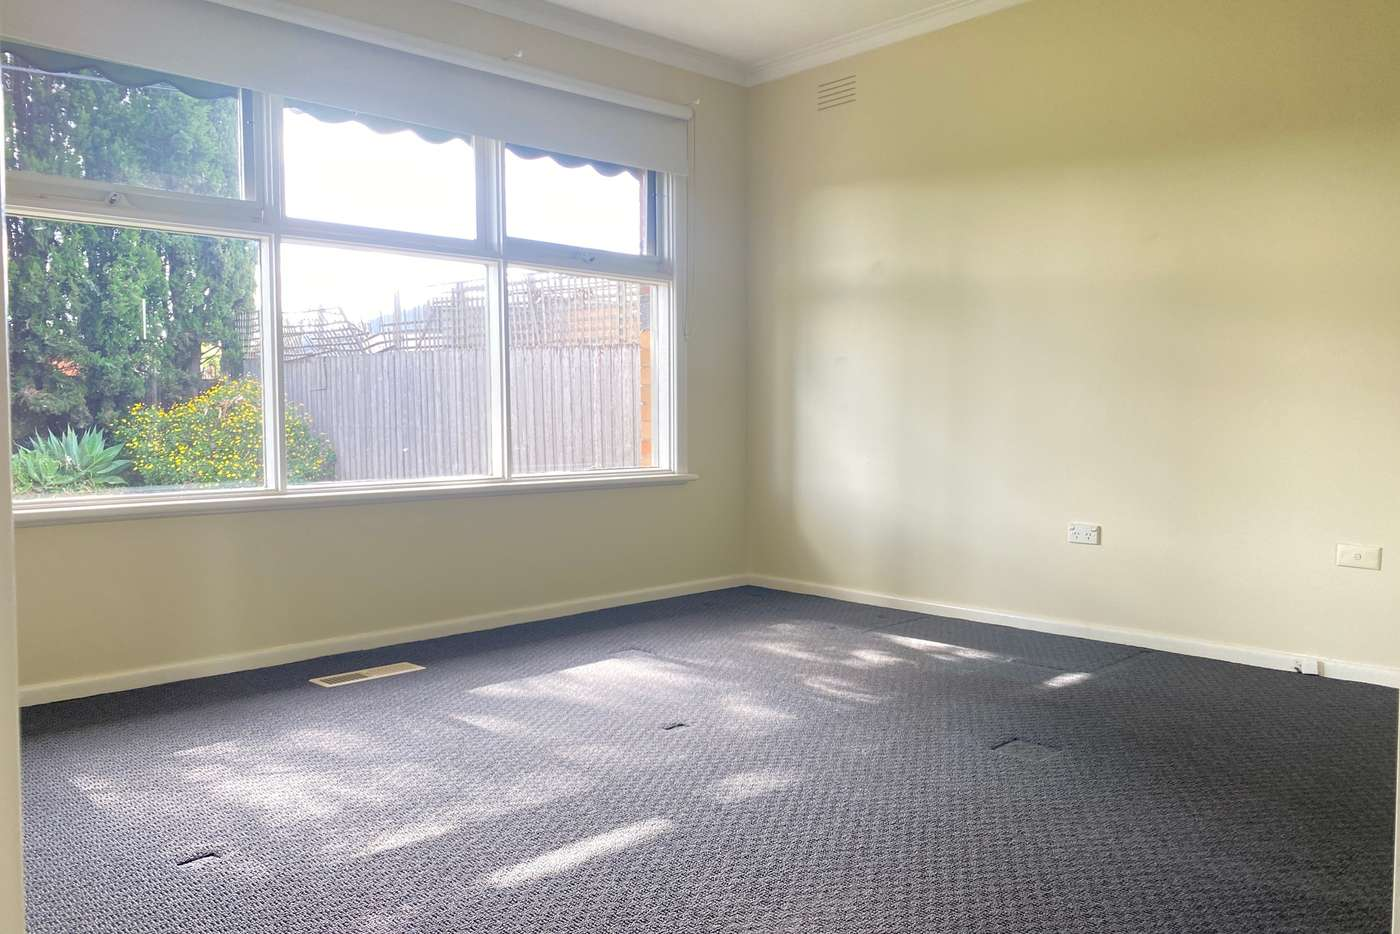 Sixth view of Homely house listing, 14 Graham Court, Thomastown VIC 3074